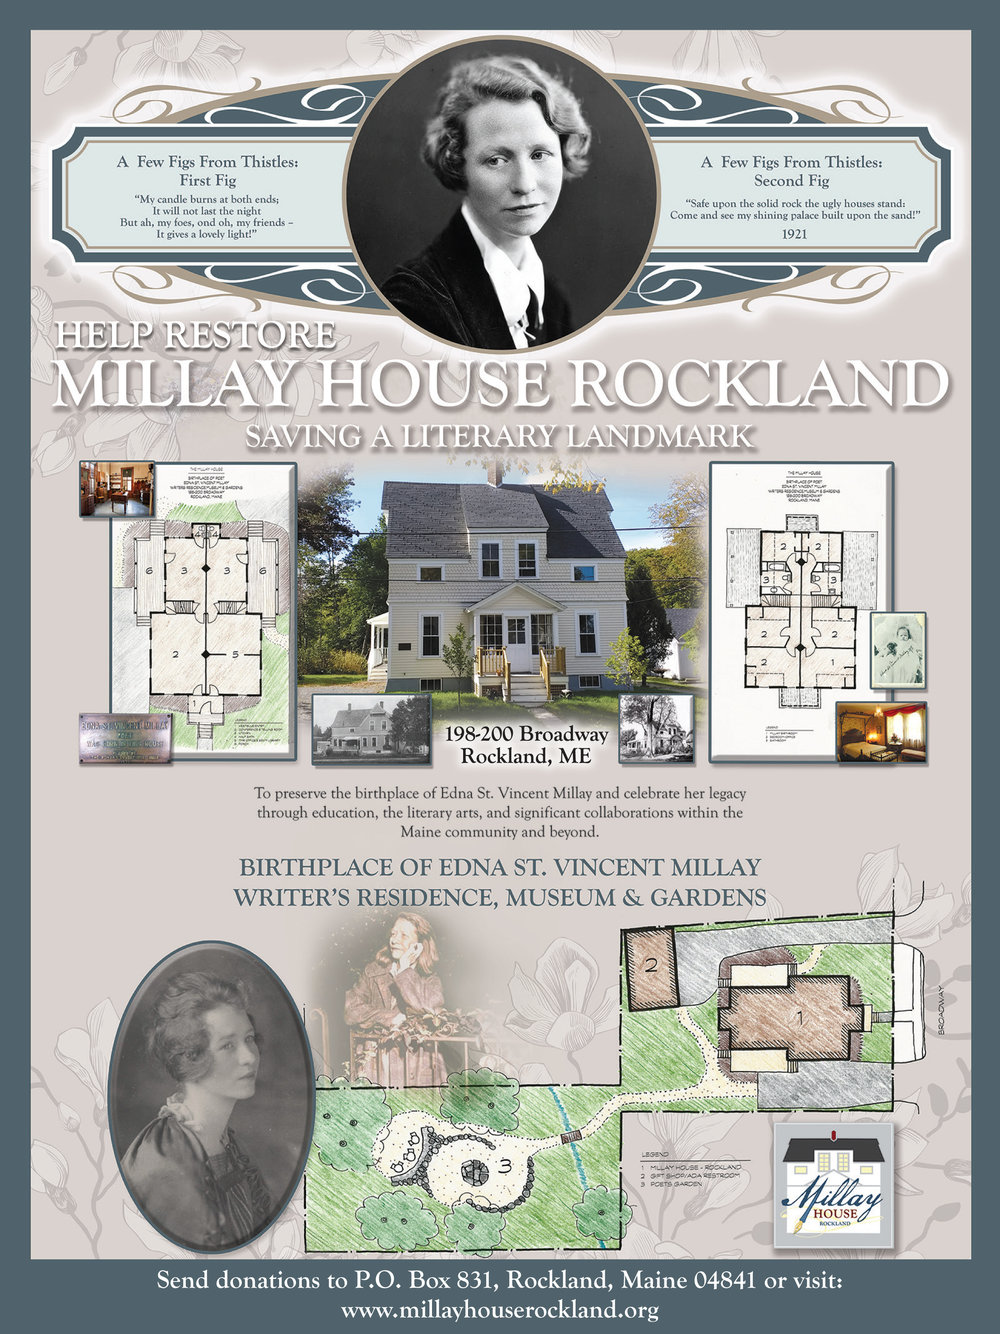 The Millay House Rockland is almost finished, ready for phase three, and needs your help! -